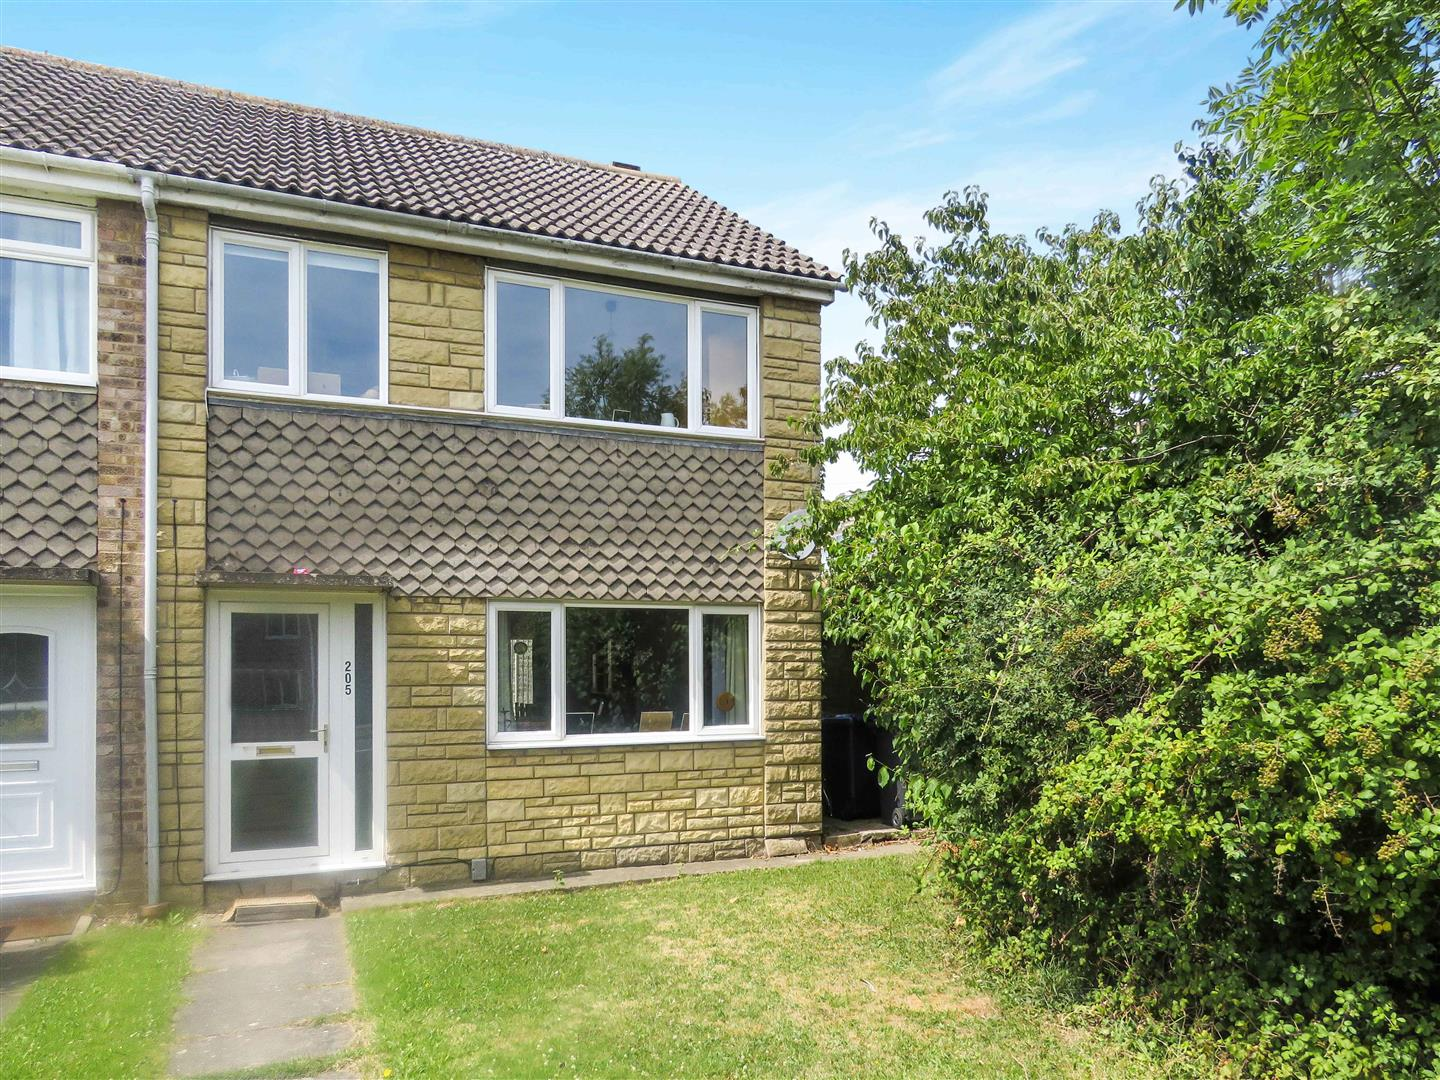 3 bedroom house for sale ramsey road st ives for 27 the terrace st ives for sale